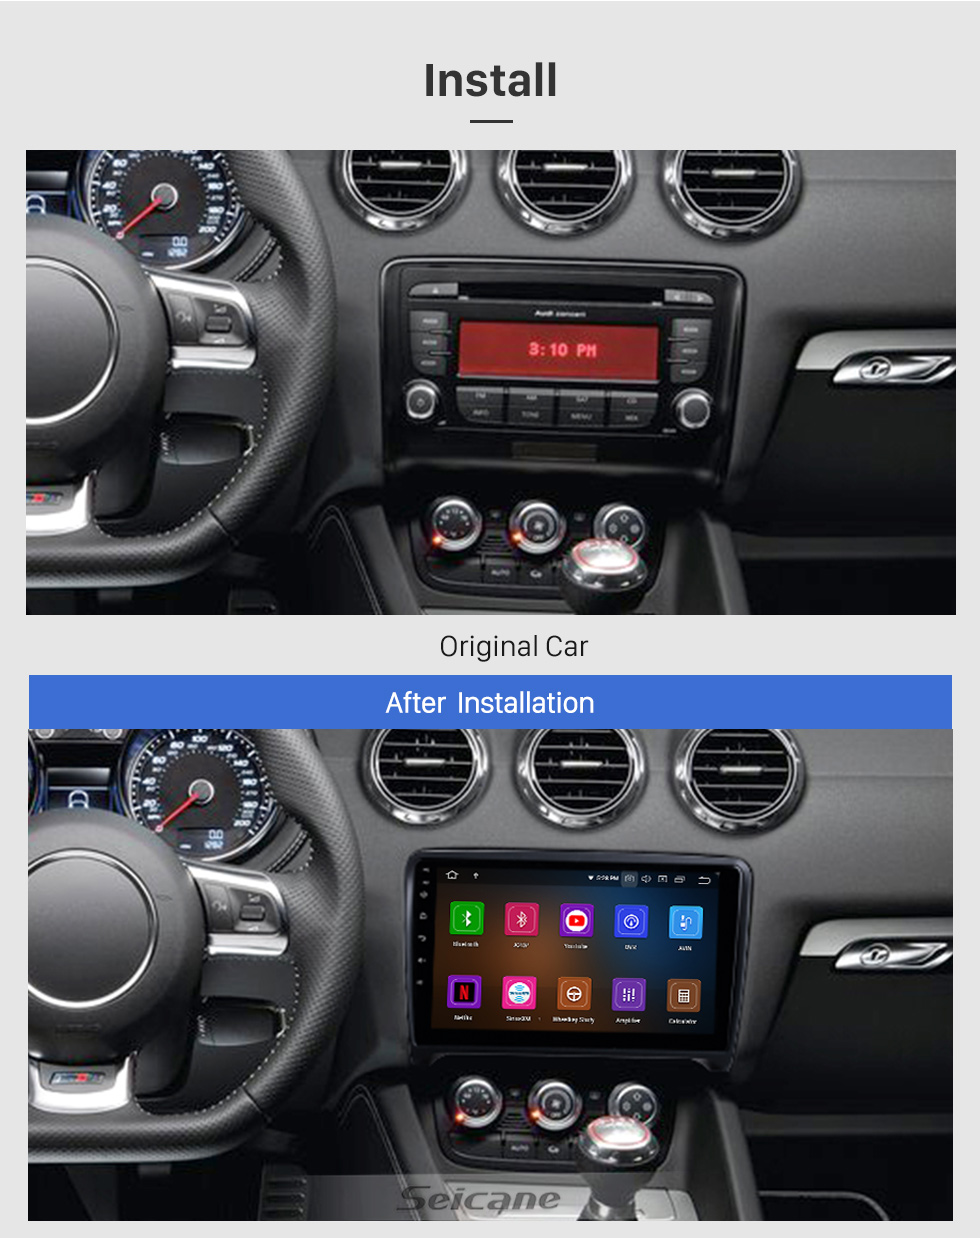 Seicane 9 inch For 2006 2007 2008-2013 Audi TT Radio Android 10.0 GPS Navigation System with Bluetooth HD Touchscreen Carplay support Digital TV